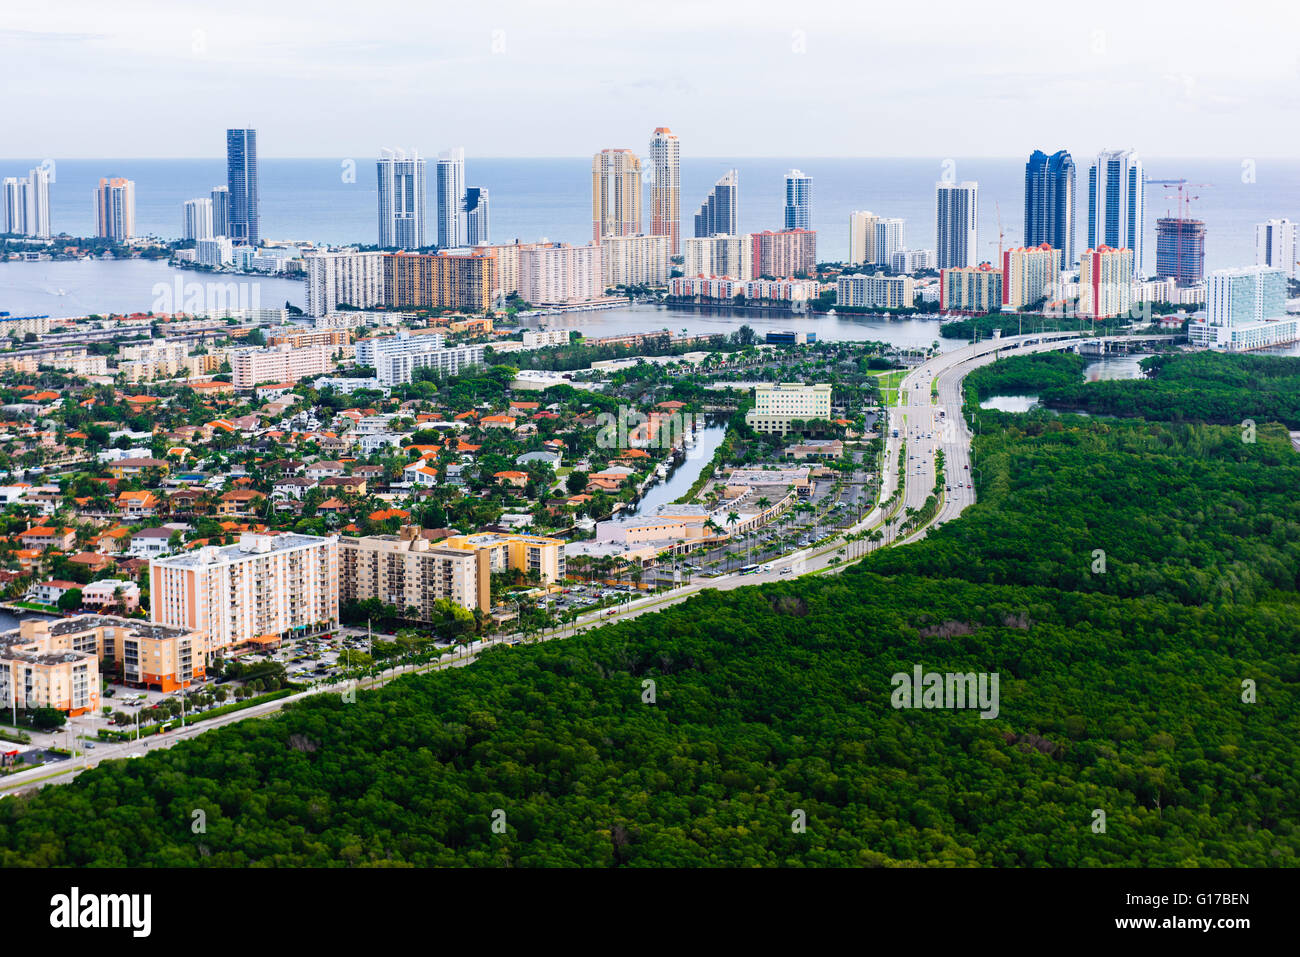 Aerial view of skyscrapers and urban sprawl, Aventura, Miami, Florida, USA - Stock Image